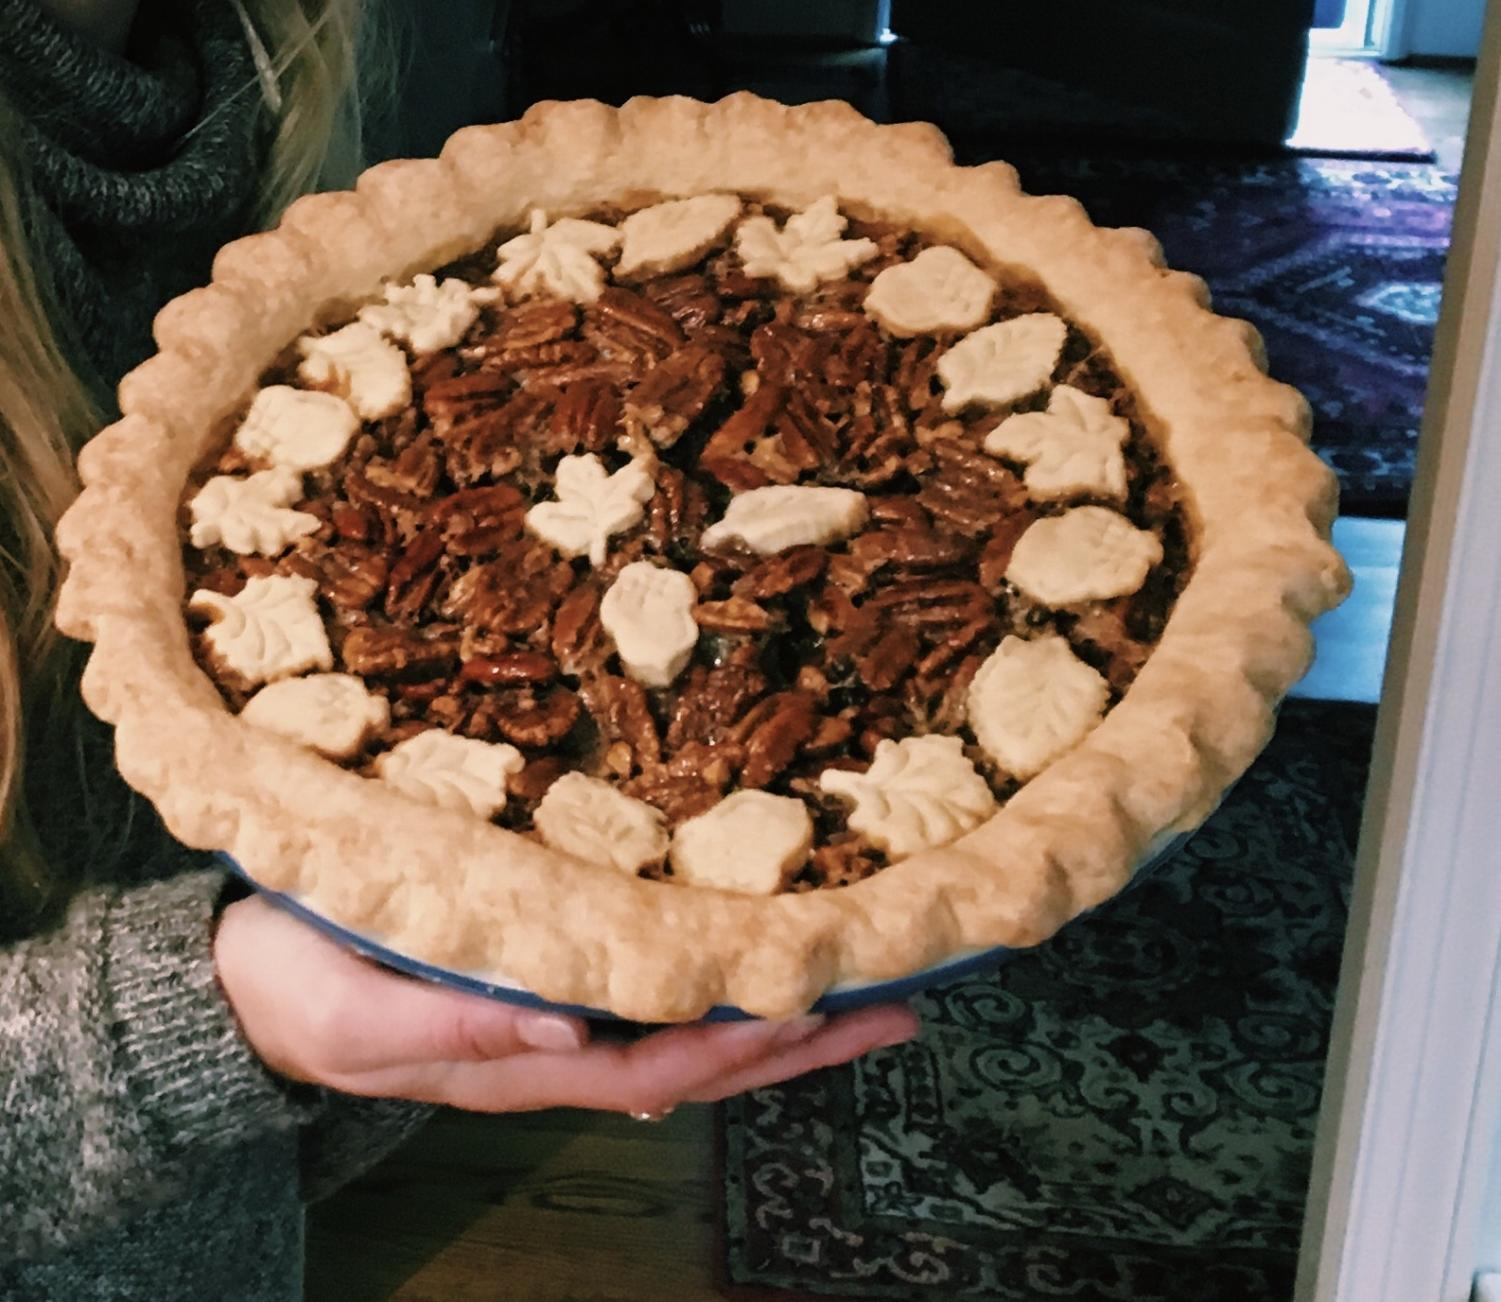 Pie, Pie, Pie! Pecan pie and Pumpkin pie are two popular pies enjoyed on Thanksgiving day after filling bellies with lots of turkey or ham!